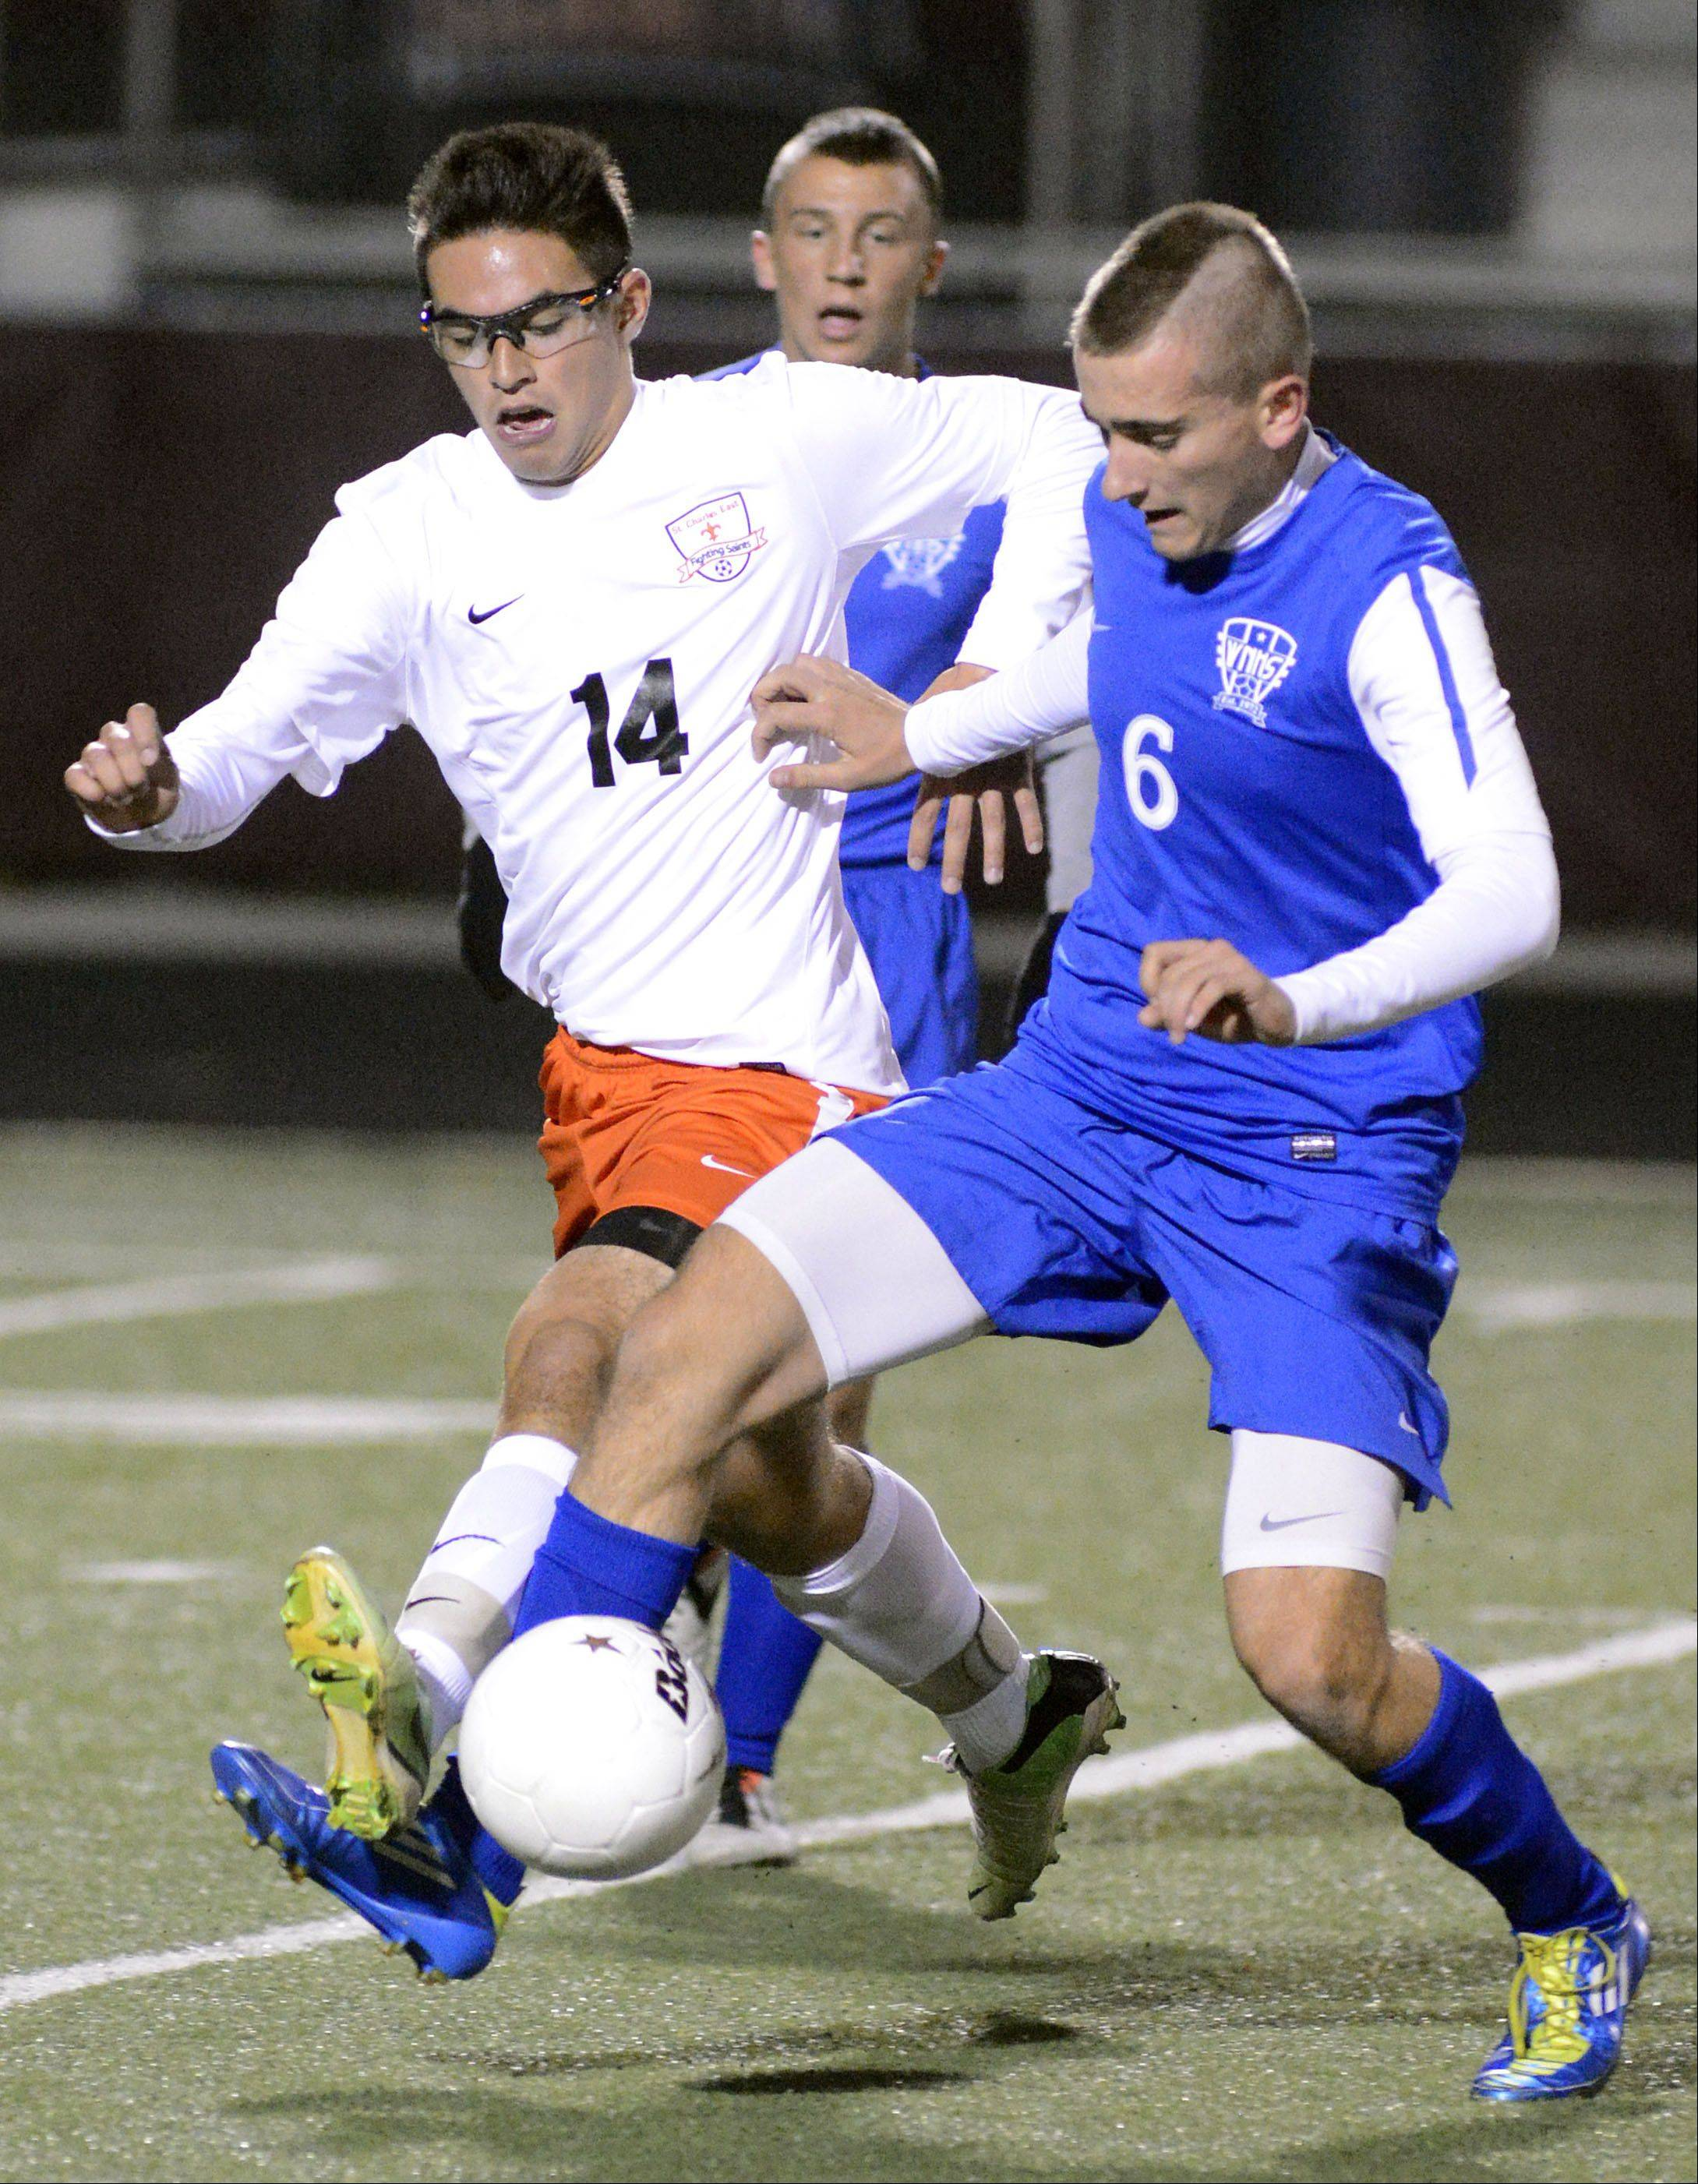 St. Charles East's Zach Manibog and Wheaton North's Jason Szumski fight for the ball in the first half of the Schaumburg sectional semifinals on Tuesday, October 29.